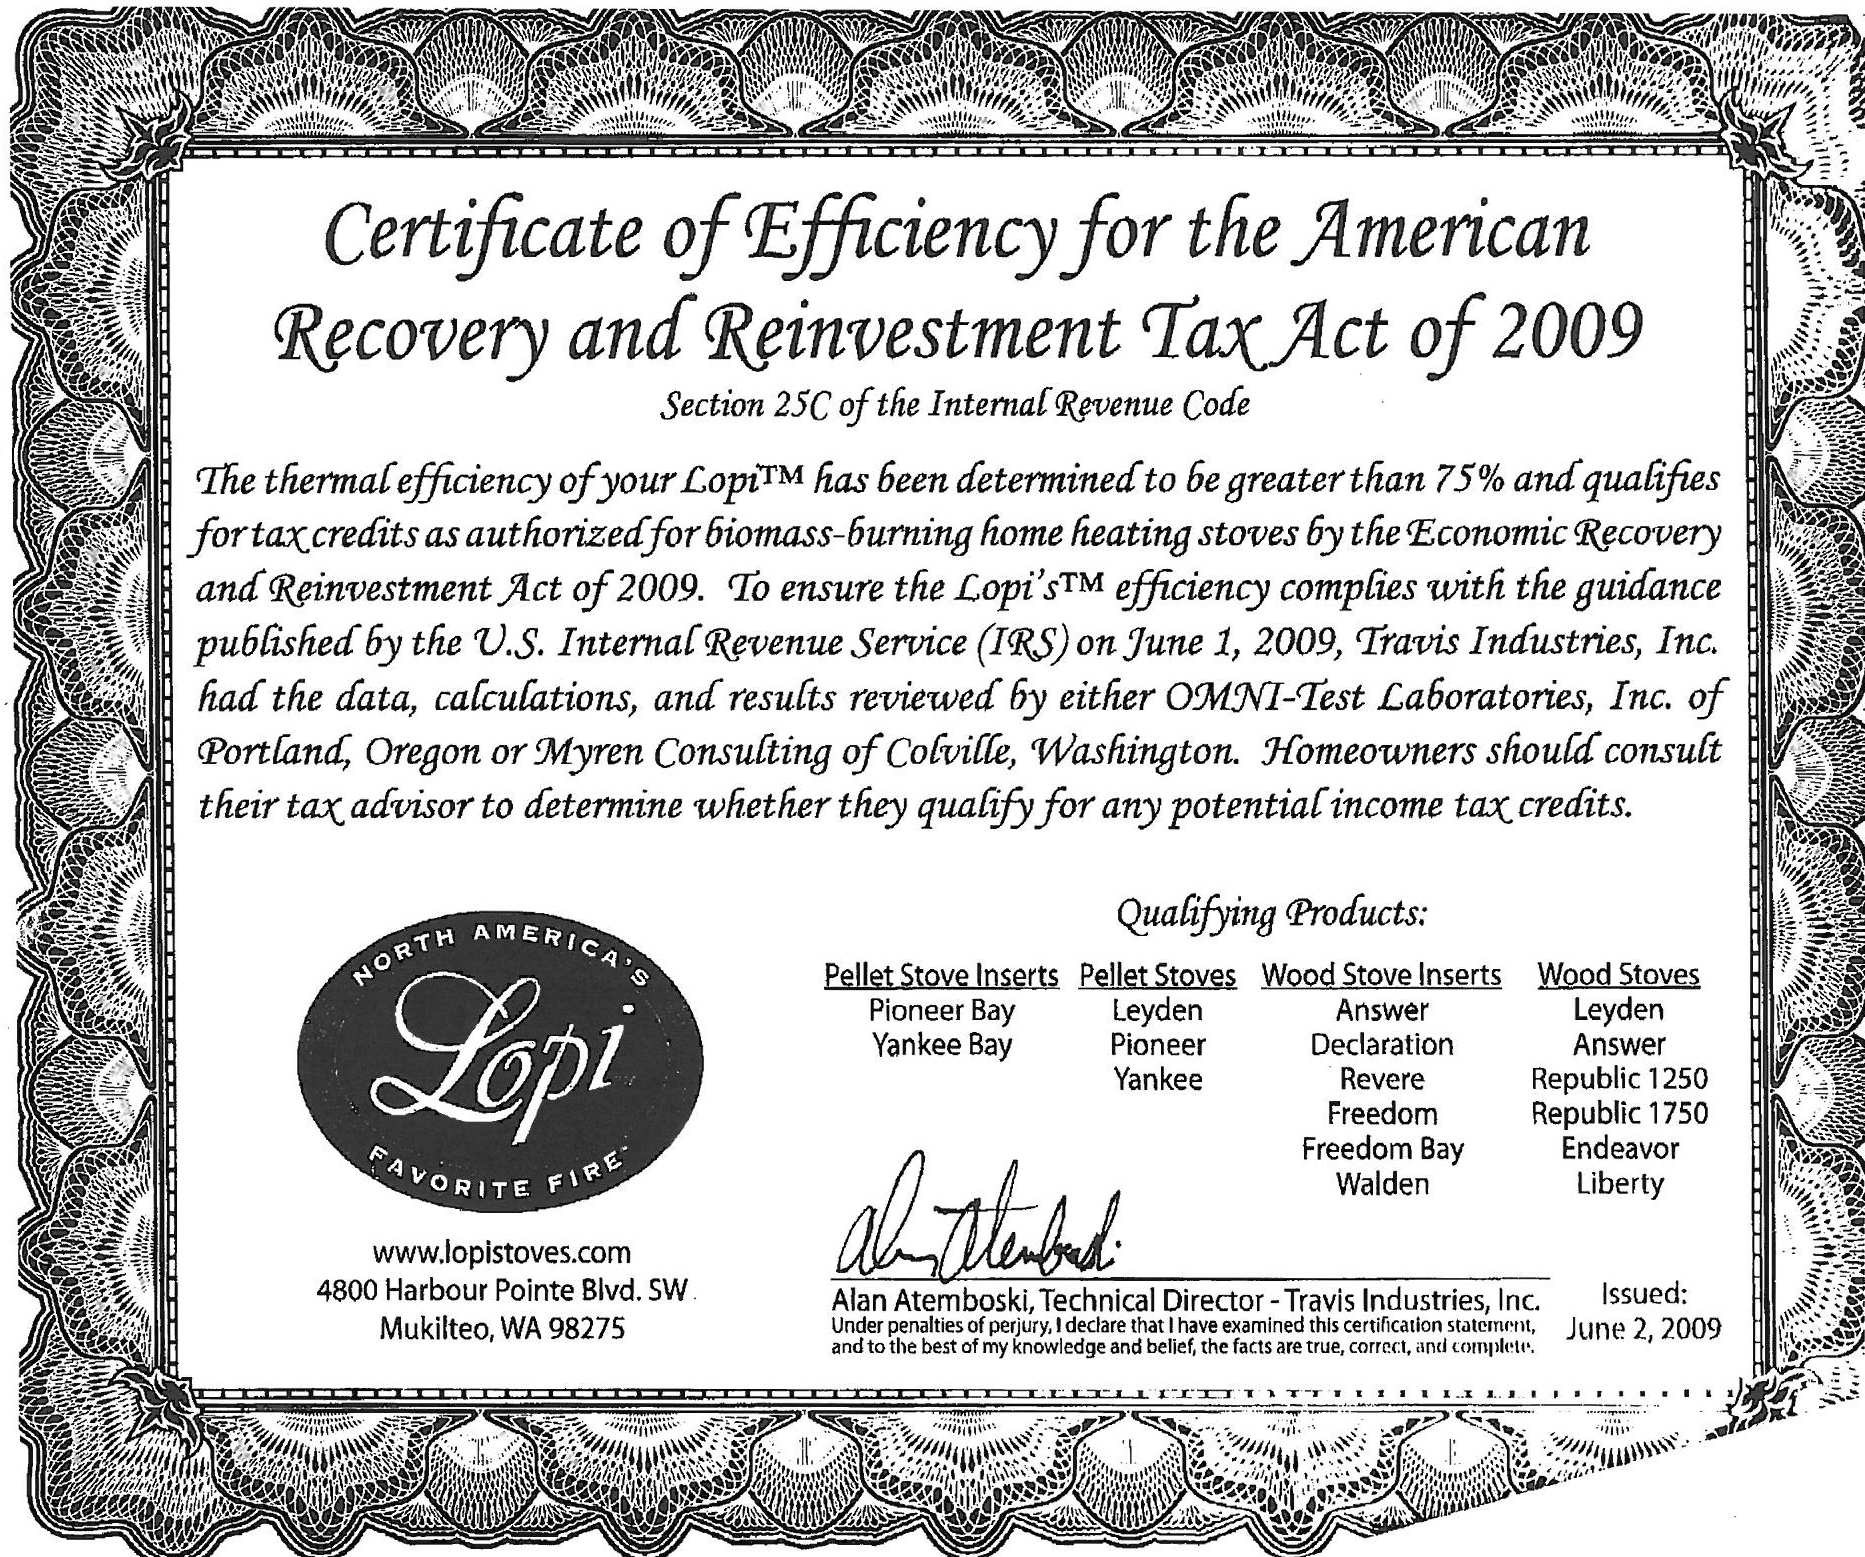 ... Efficiency for the American Recovery and Reinvestment Tax Act of 2009